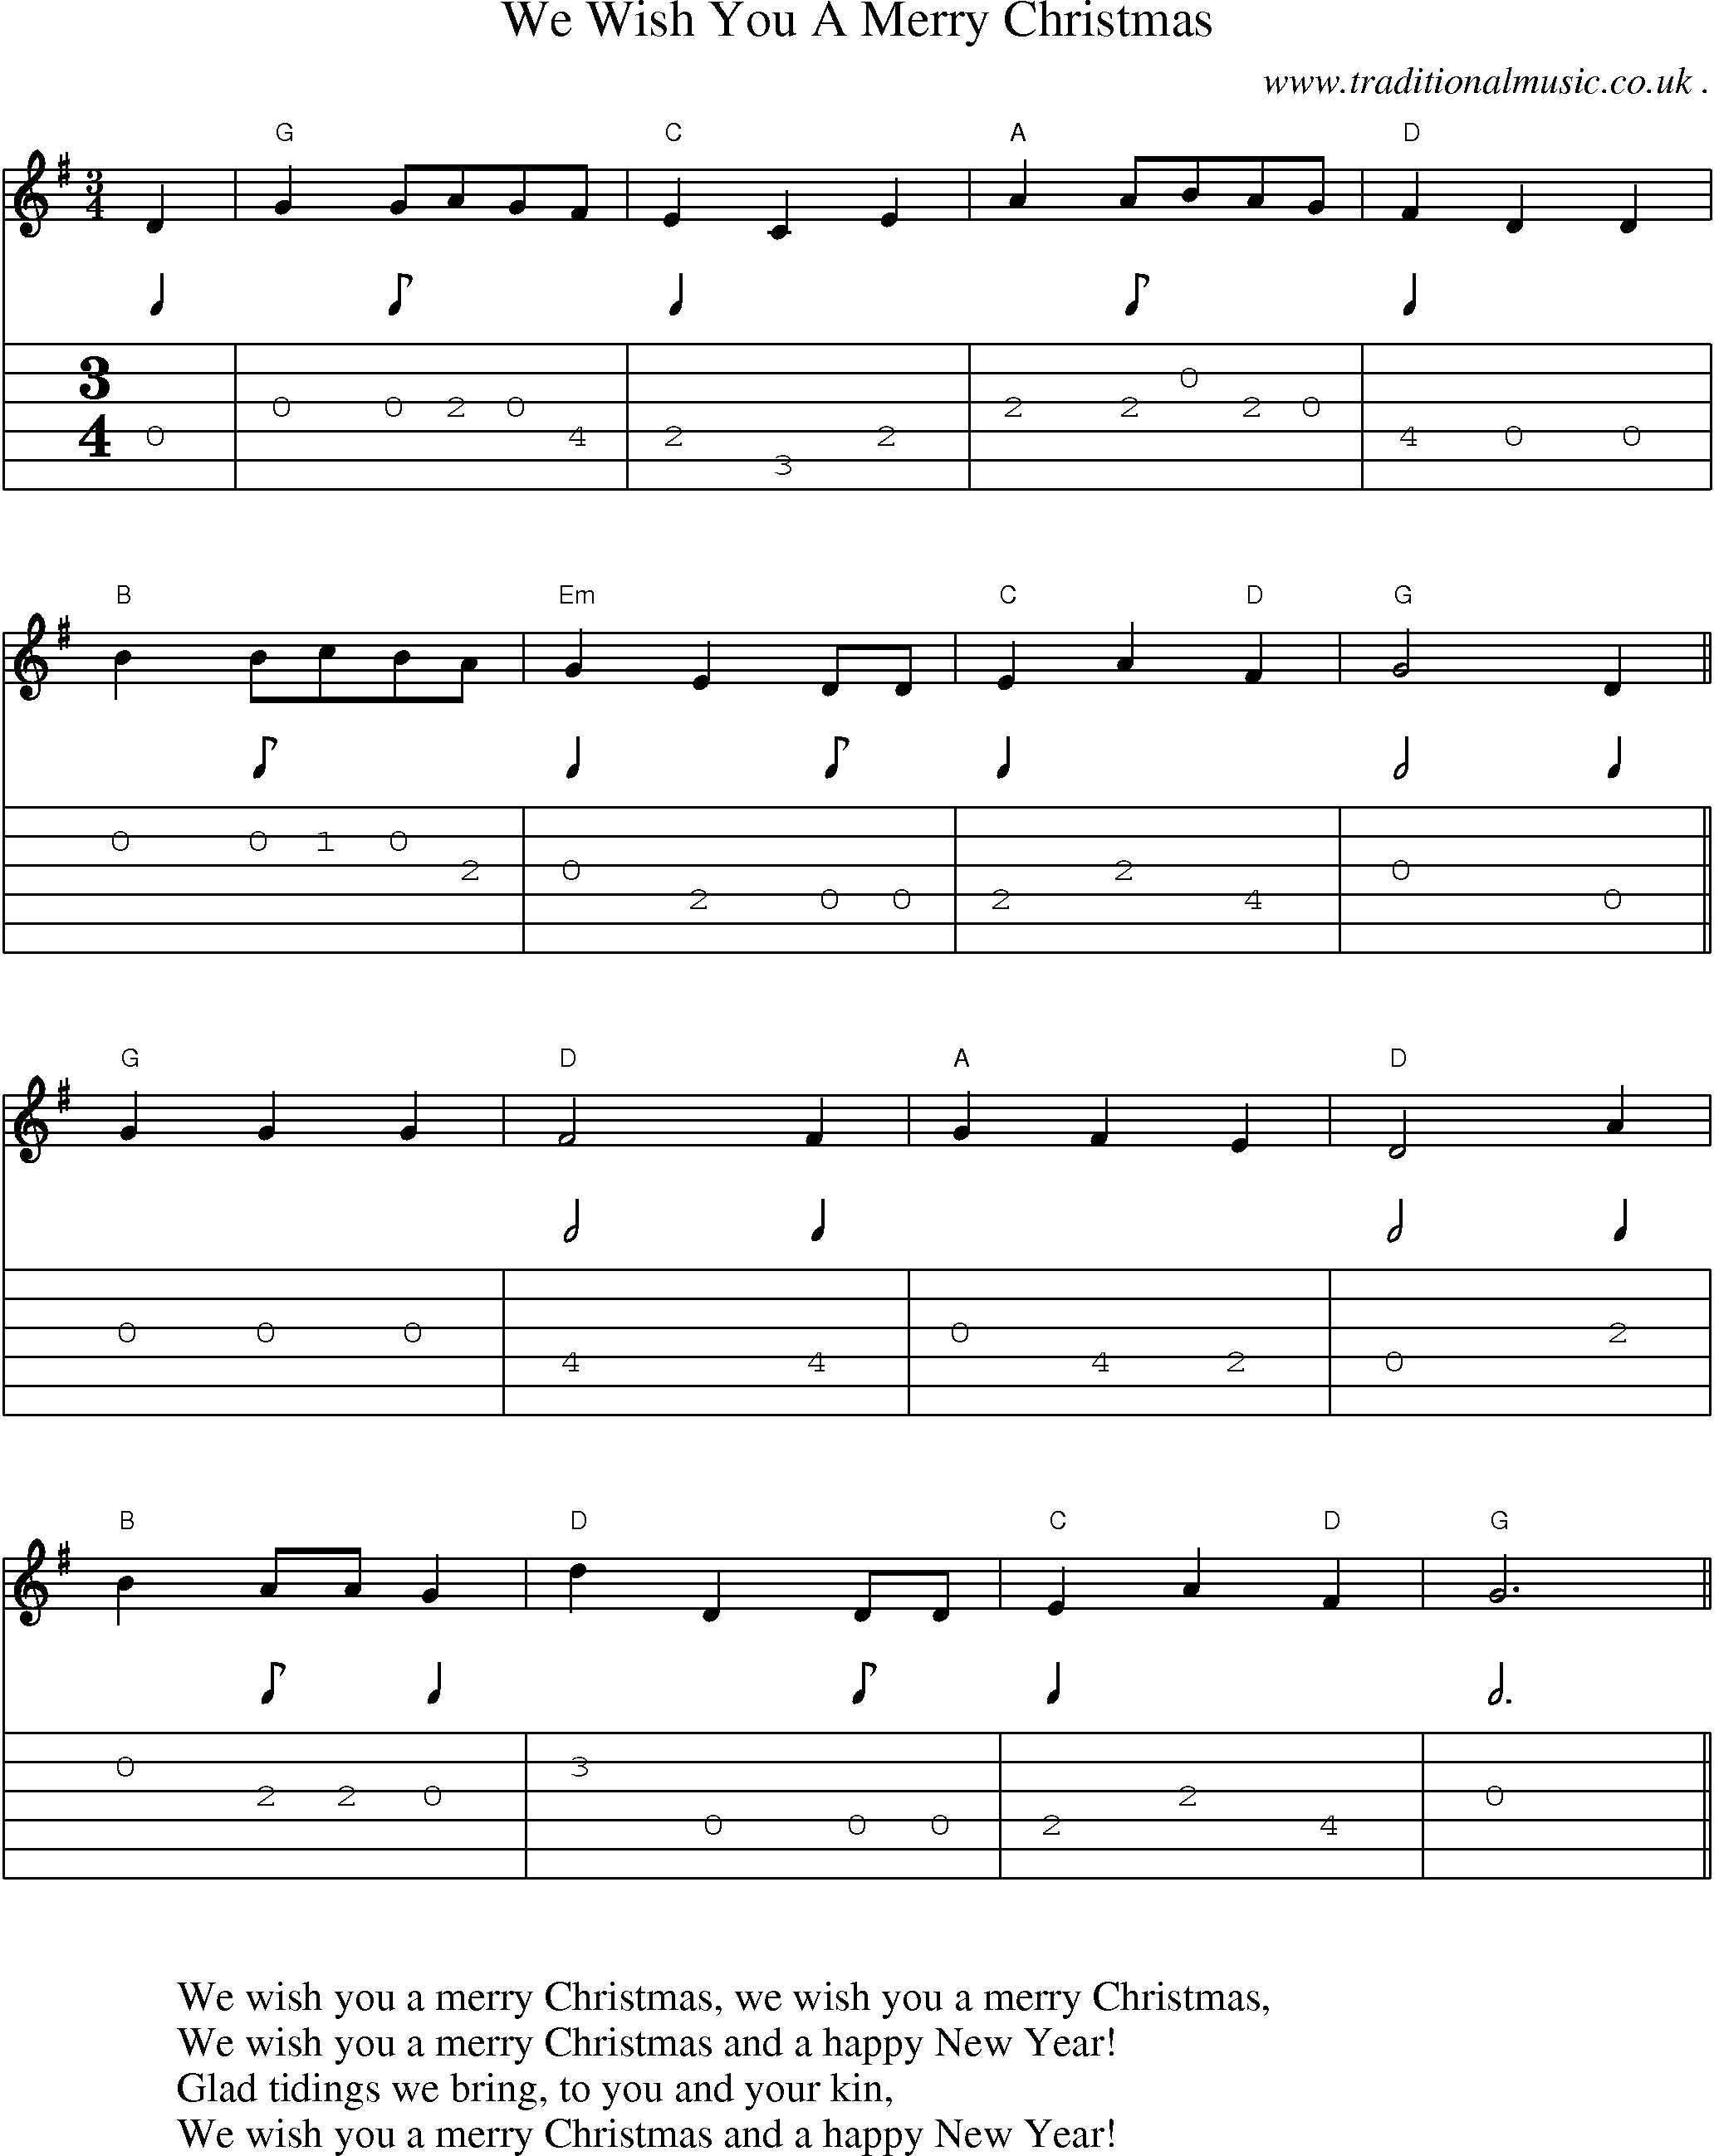 Music Score And Guitar Tabs For We Wish You A Merry Christmas Guitar Tabs Guitar Lessons Songs Acoustic Guitar